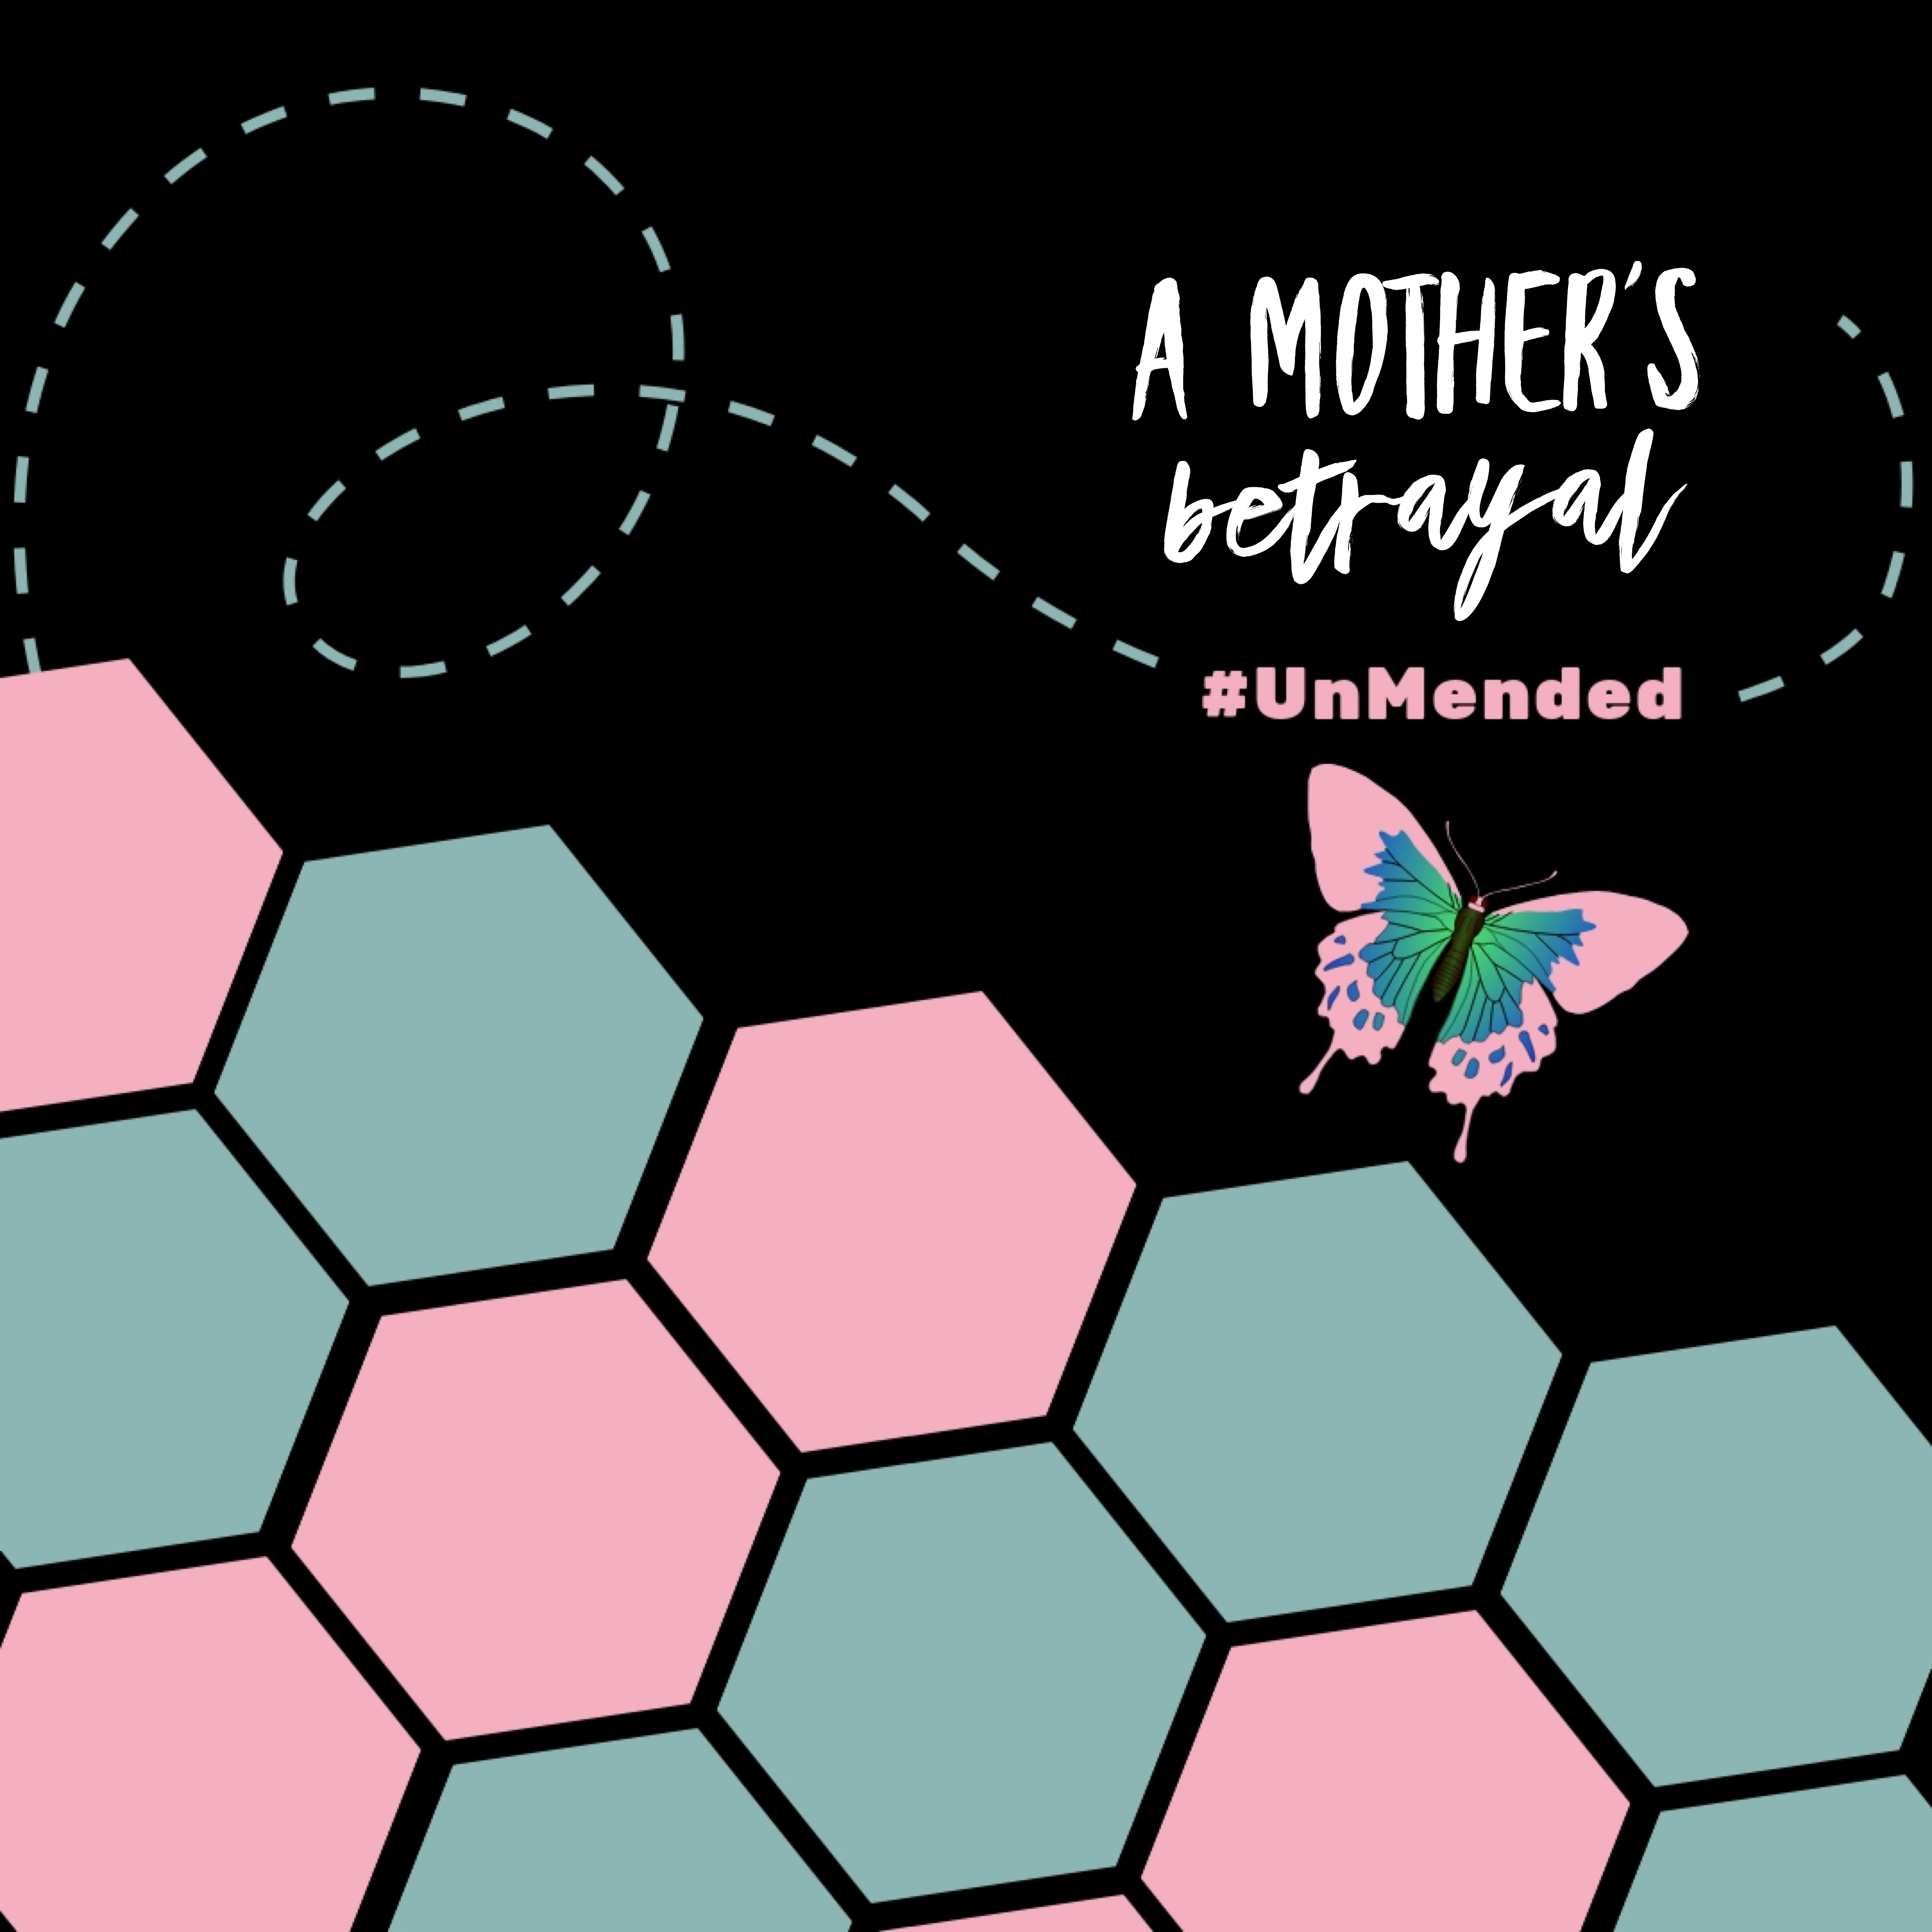 https://mendthevow.com/2019/25/a-mothers-betrayal/in-the-Custom-structure-text-box./